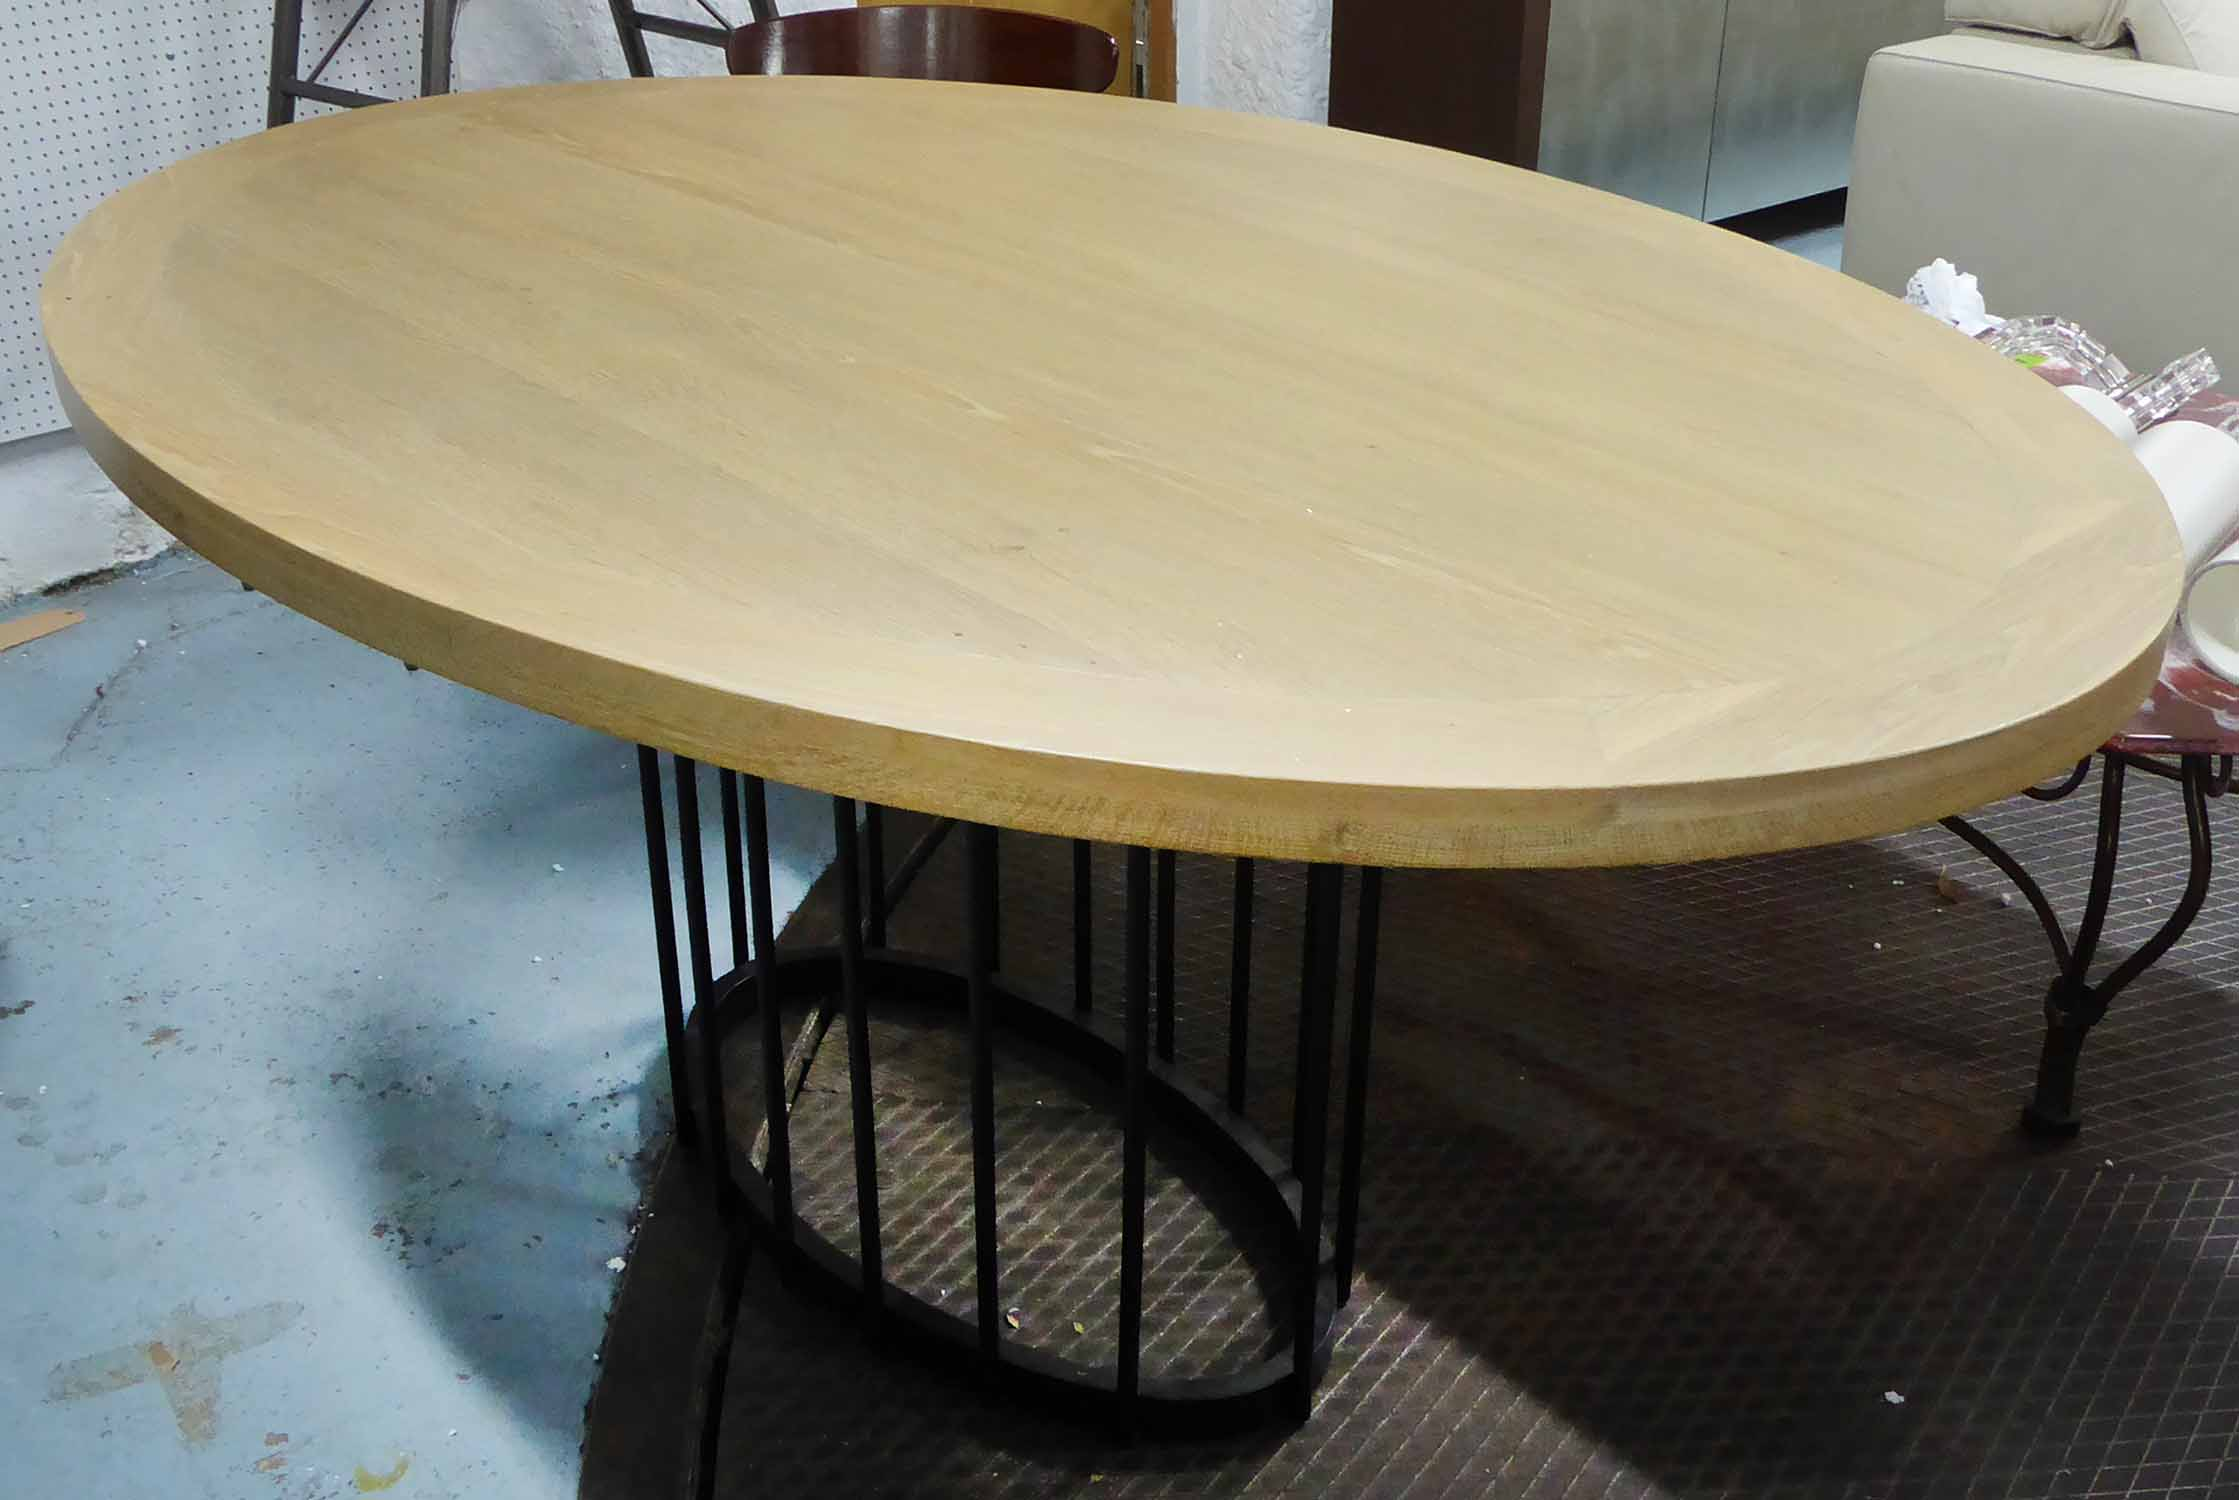 Lot 58 - CENTRE TABLE, the oval wooden top on a metal central base, 160cm x 116cm.